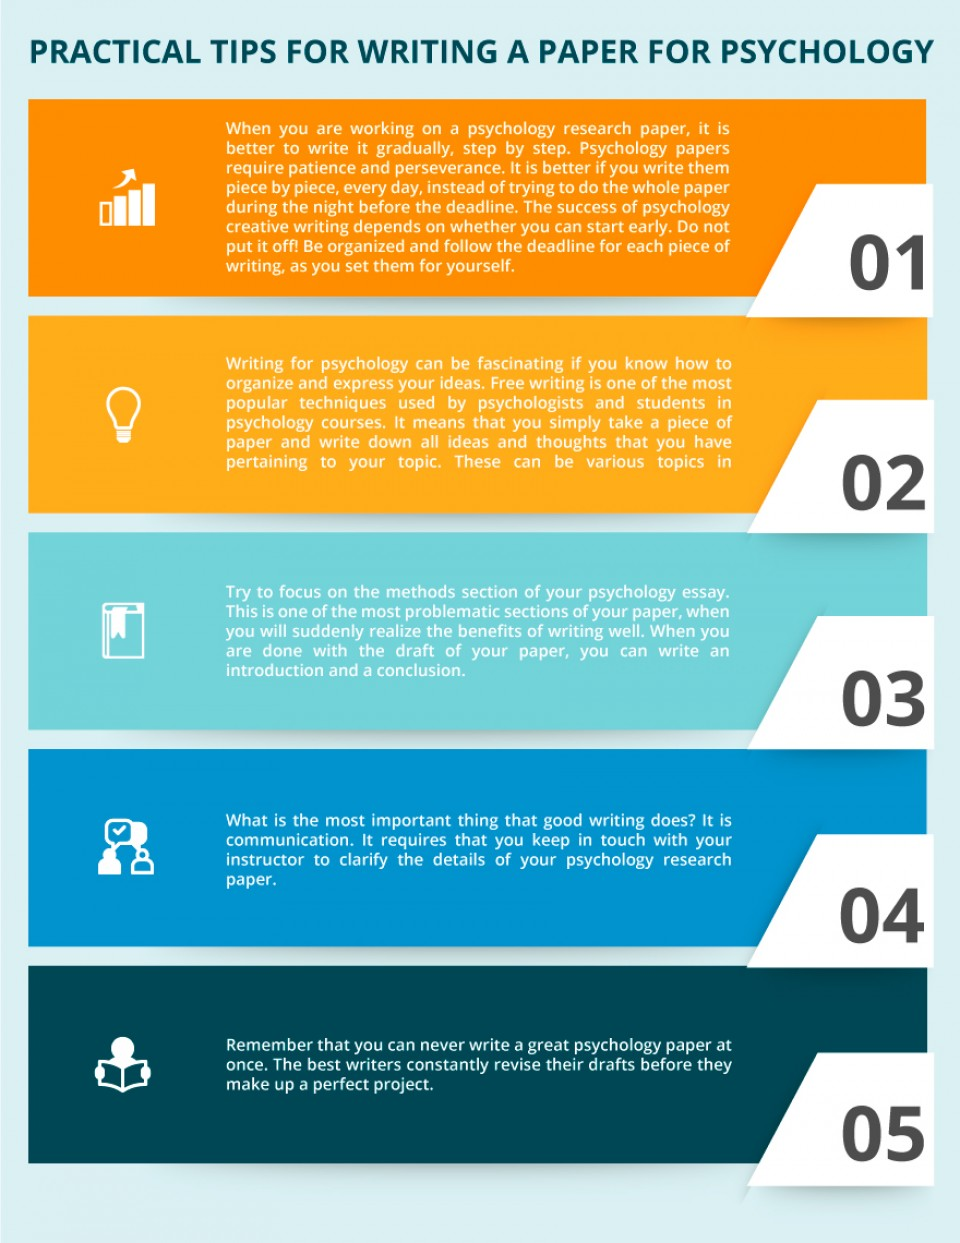 027 Good Topics For Research Papers In Psychology Infographic Practical Tips Writing Paper  Excellent List Of Interesting960